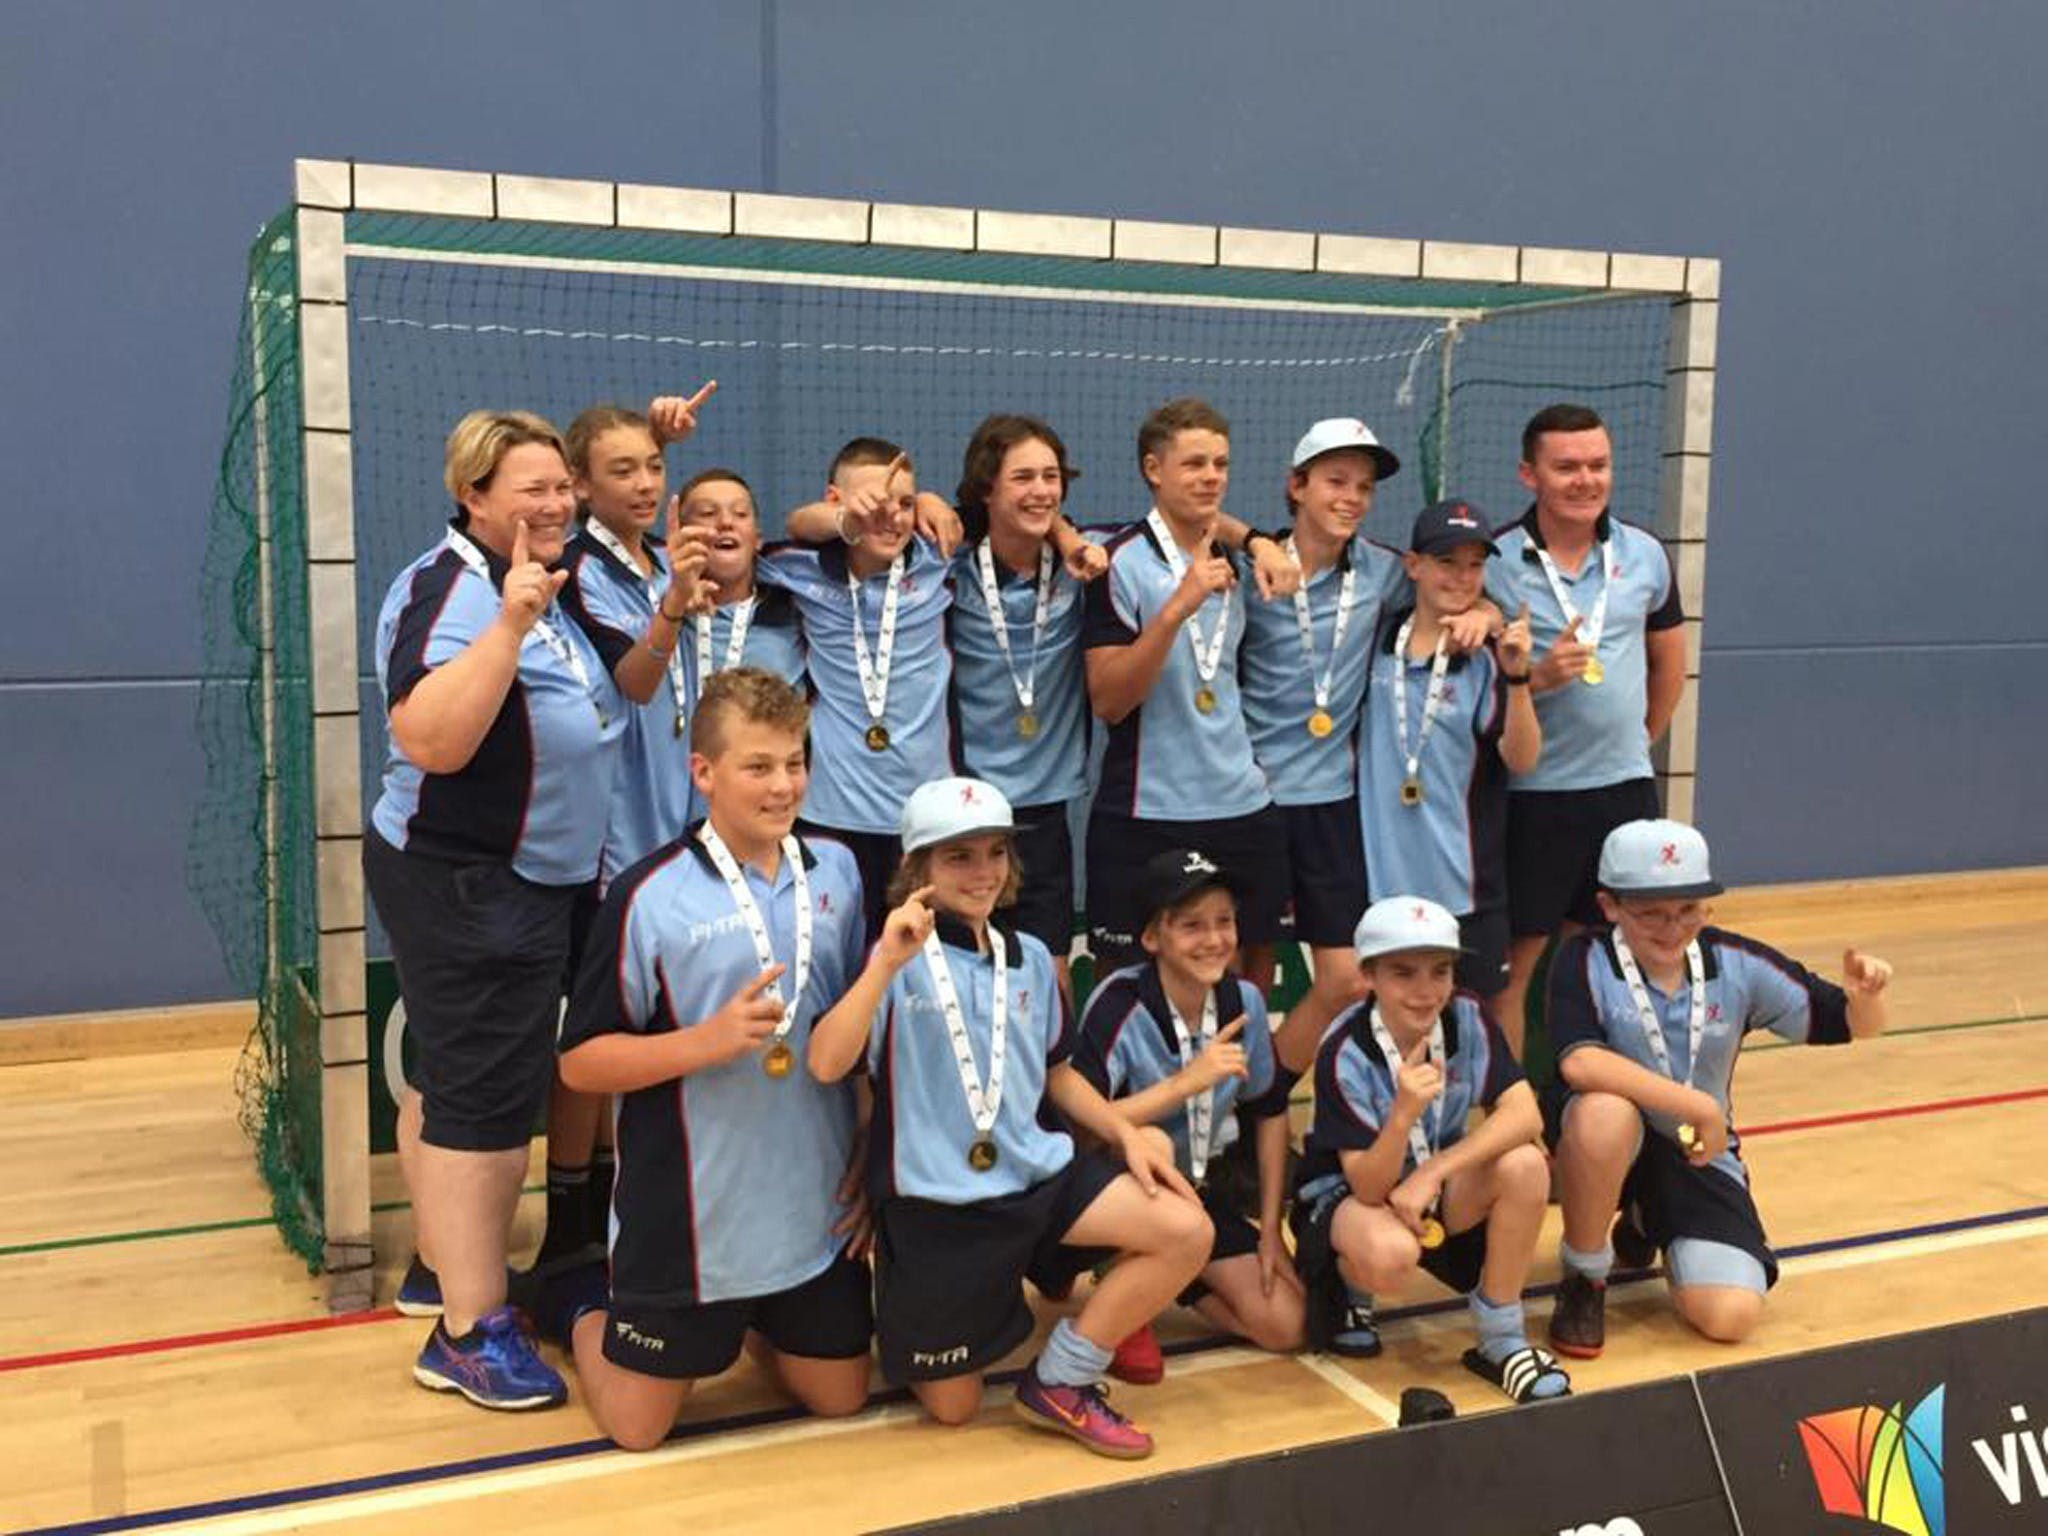 Hockey NSW Indoor State Championship  Under 18 Boys - New South Wales Tourism